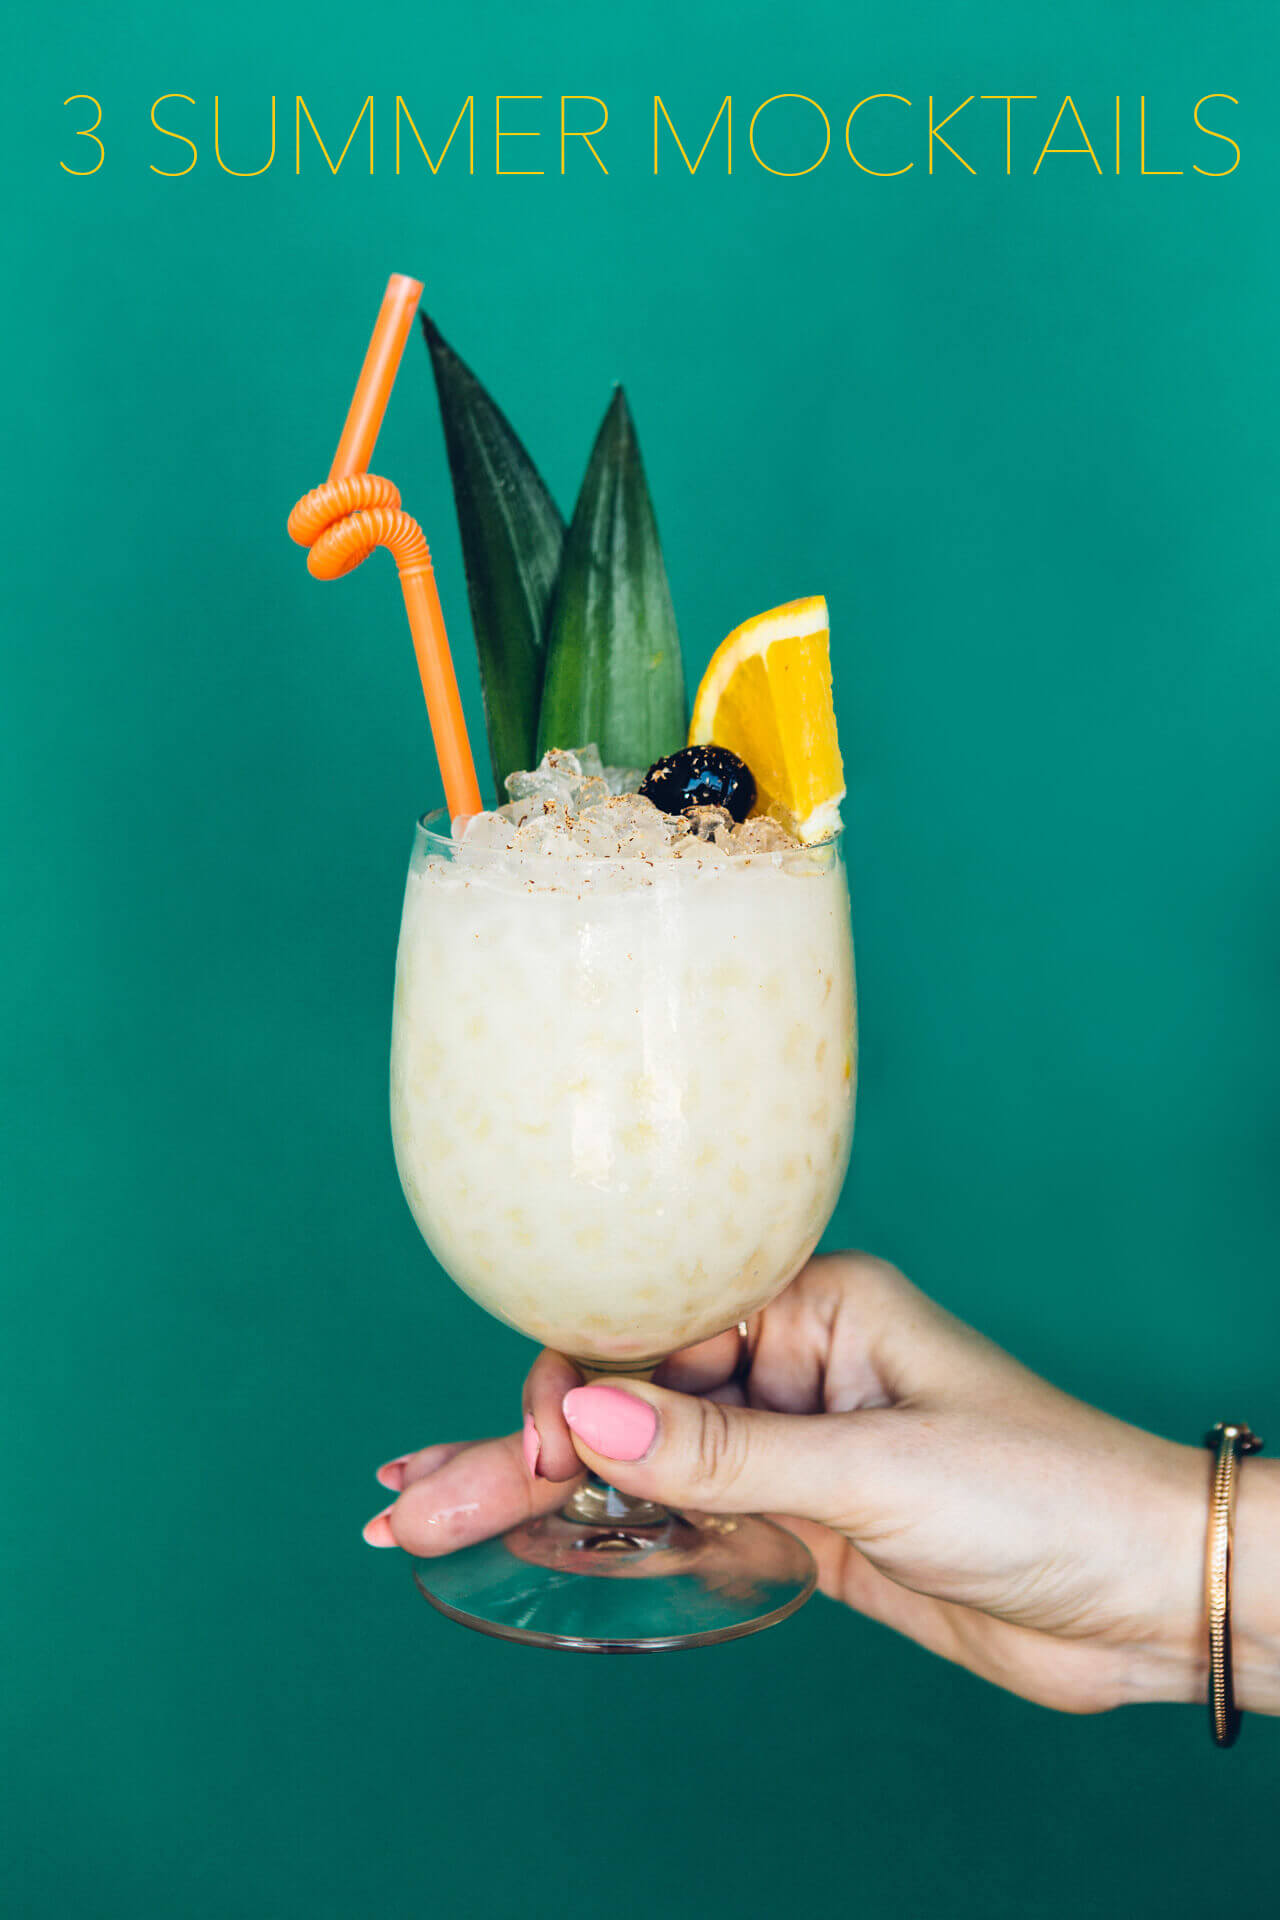 3 summer mocktails you have to try!